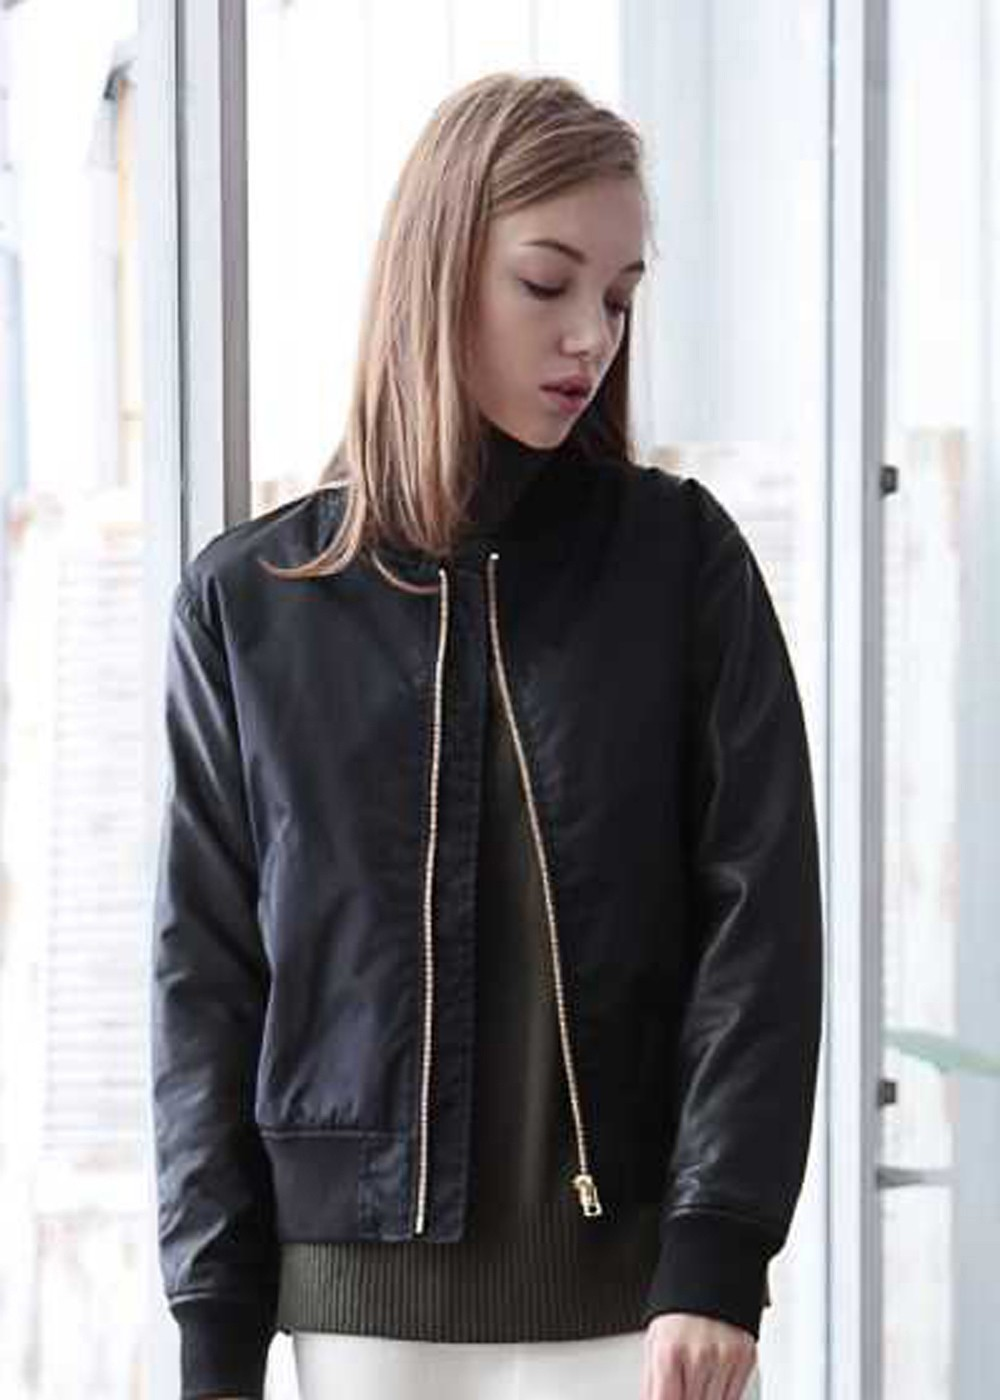 Lamb Leather Sleeve Blouson|Black|ブルゾン・カバーオール|POMPADOUR|最大59%OFF